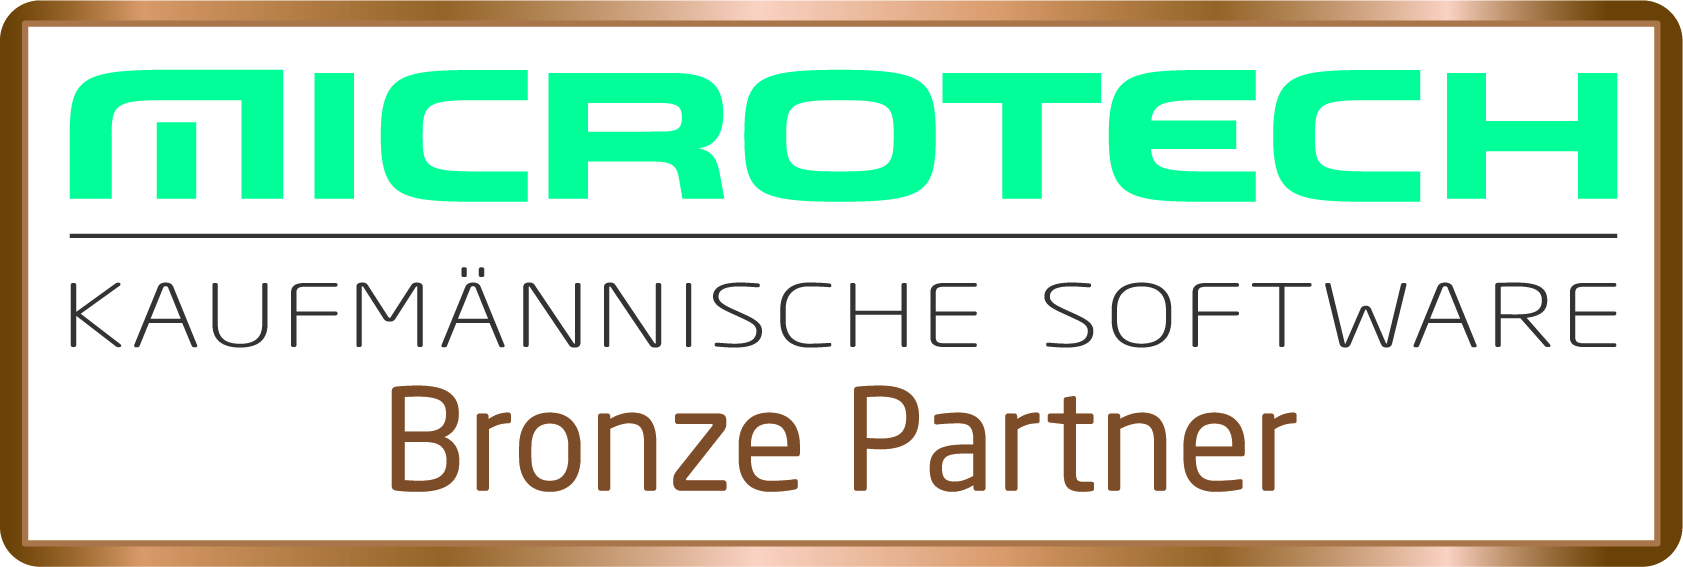 partnerlogo-bronze